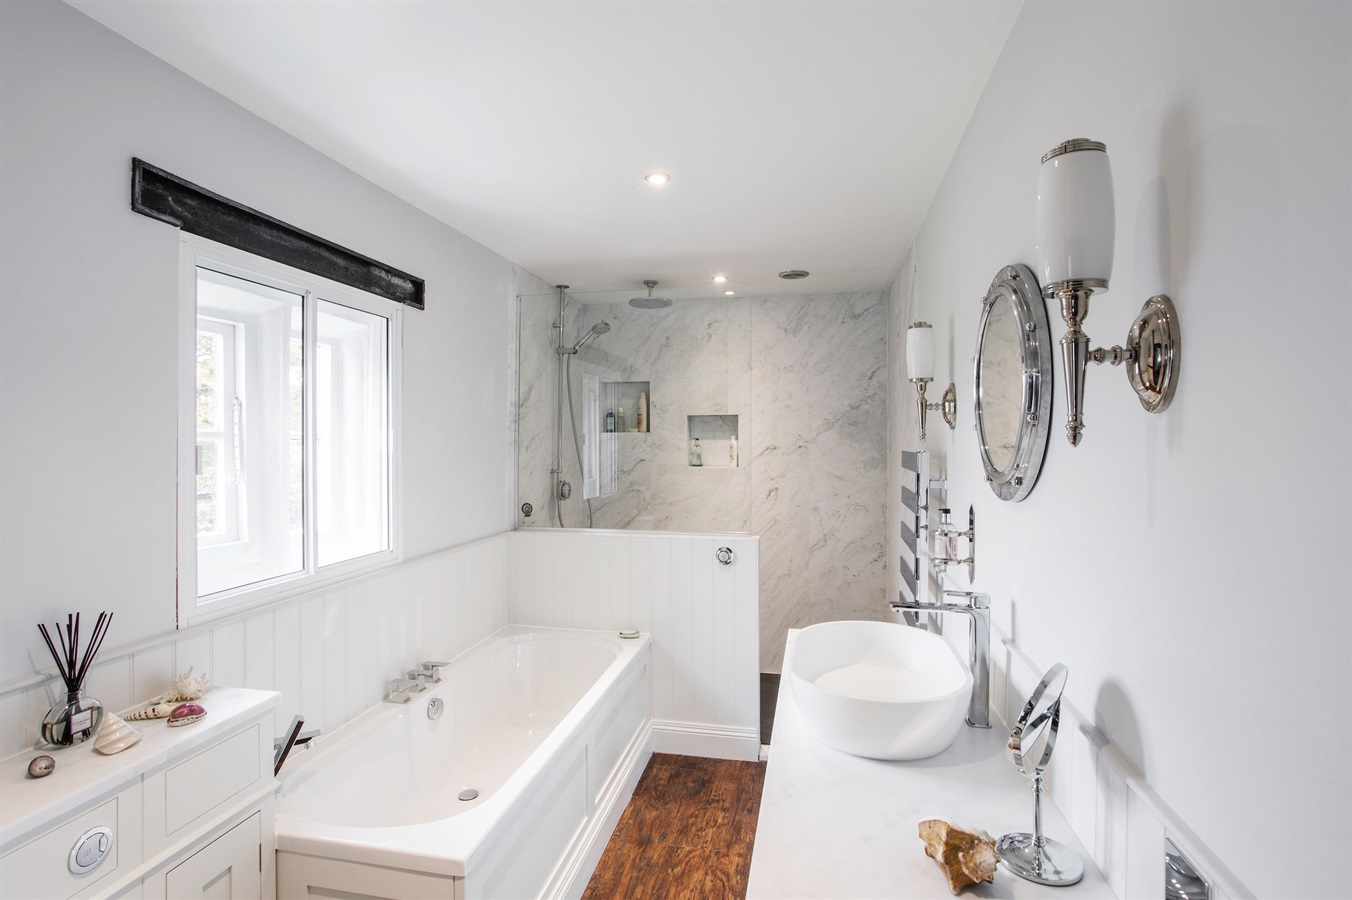 Burlanes Interiors - Family Bathroom Design